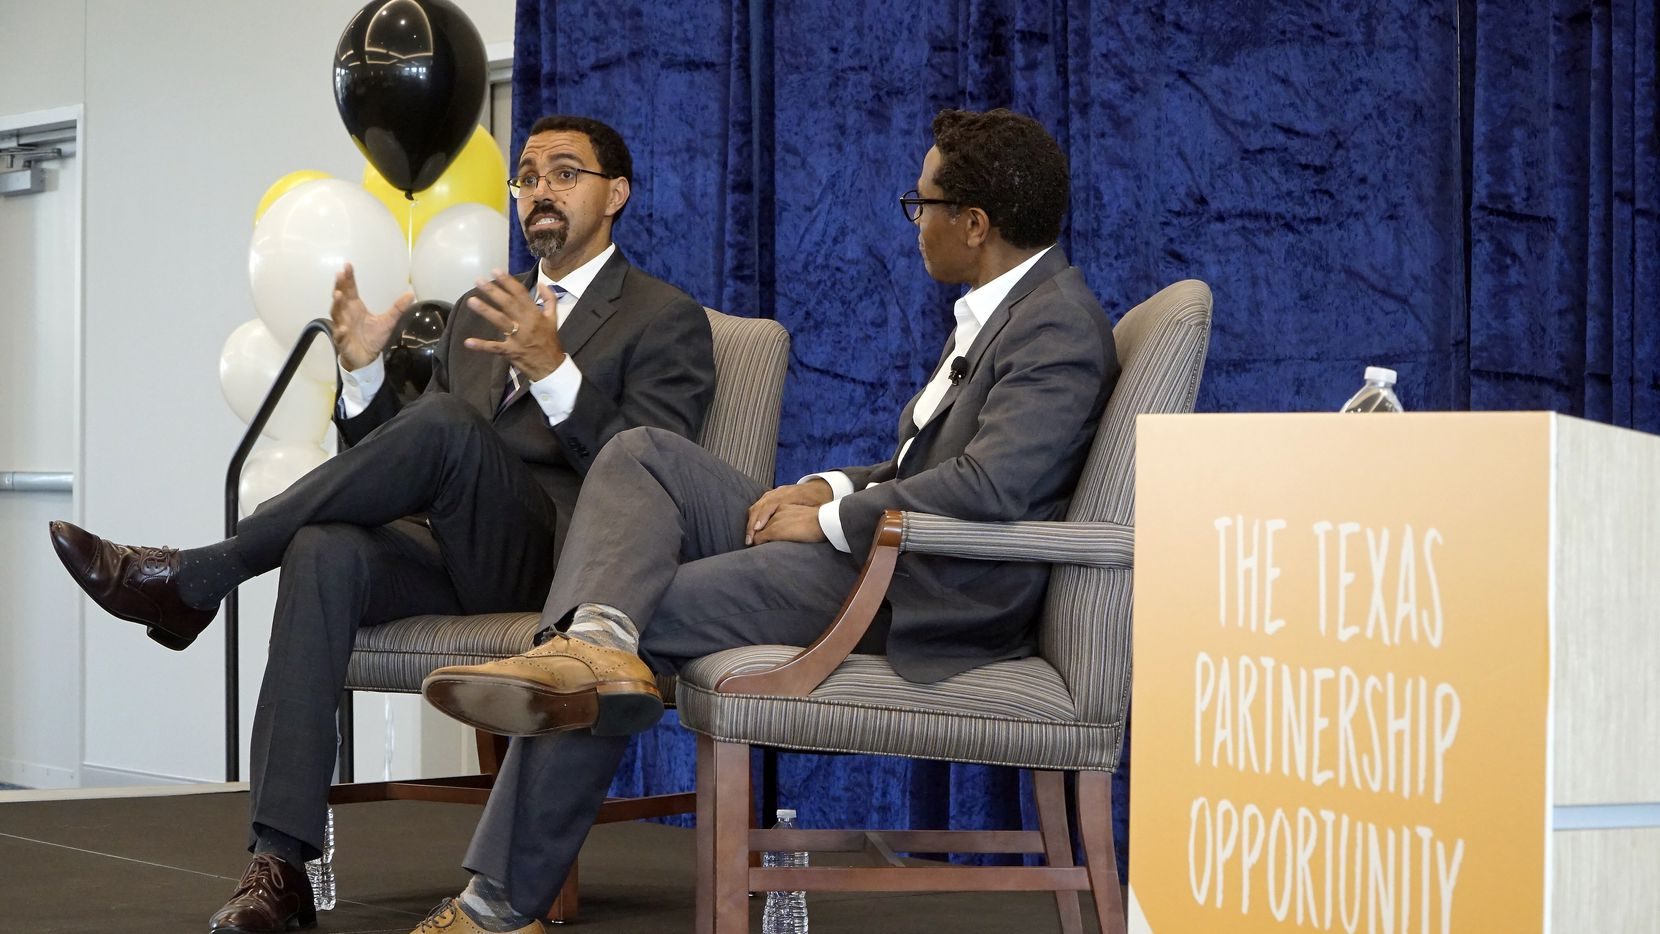 "Former U.S. Secretary of Education John B. King is interviewed by Jeremy Smith at ""The Texas Partnership Opportunity"" on the campus of Texas Wesleyan in Fort Worth, Texas on Thursday, October 10, 2019."